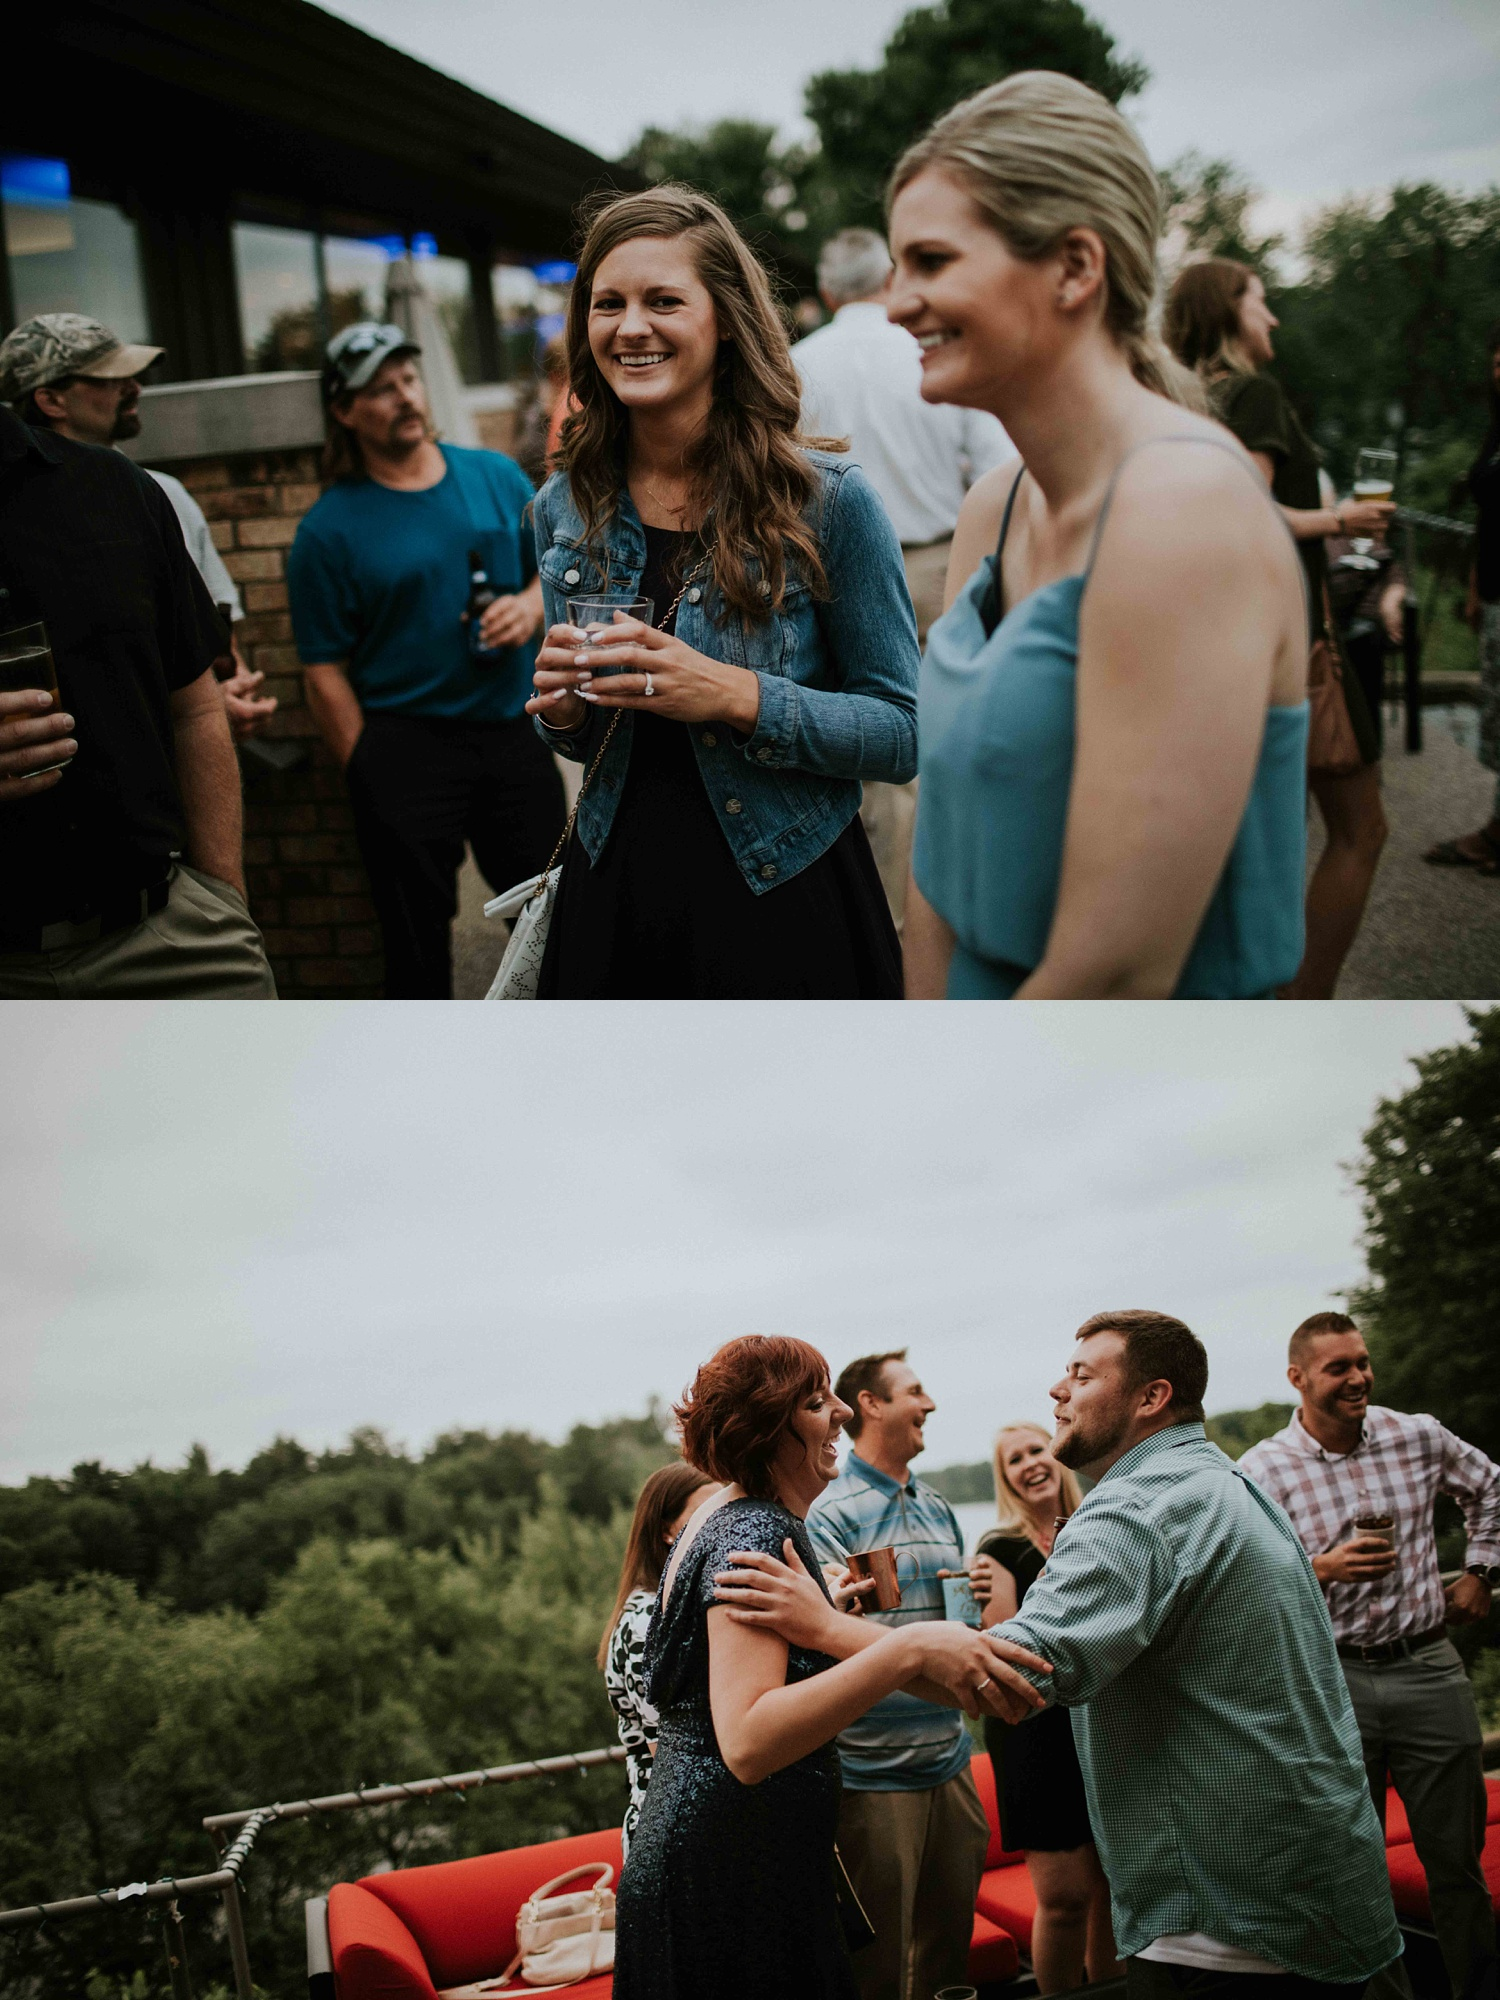 Bulls Eye Country Club Wedding Photographer Wisconsin Rapids Chloe Ann Photography_0028.jpg